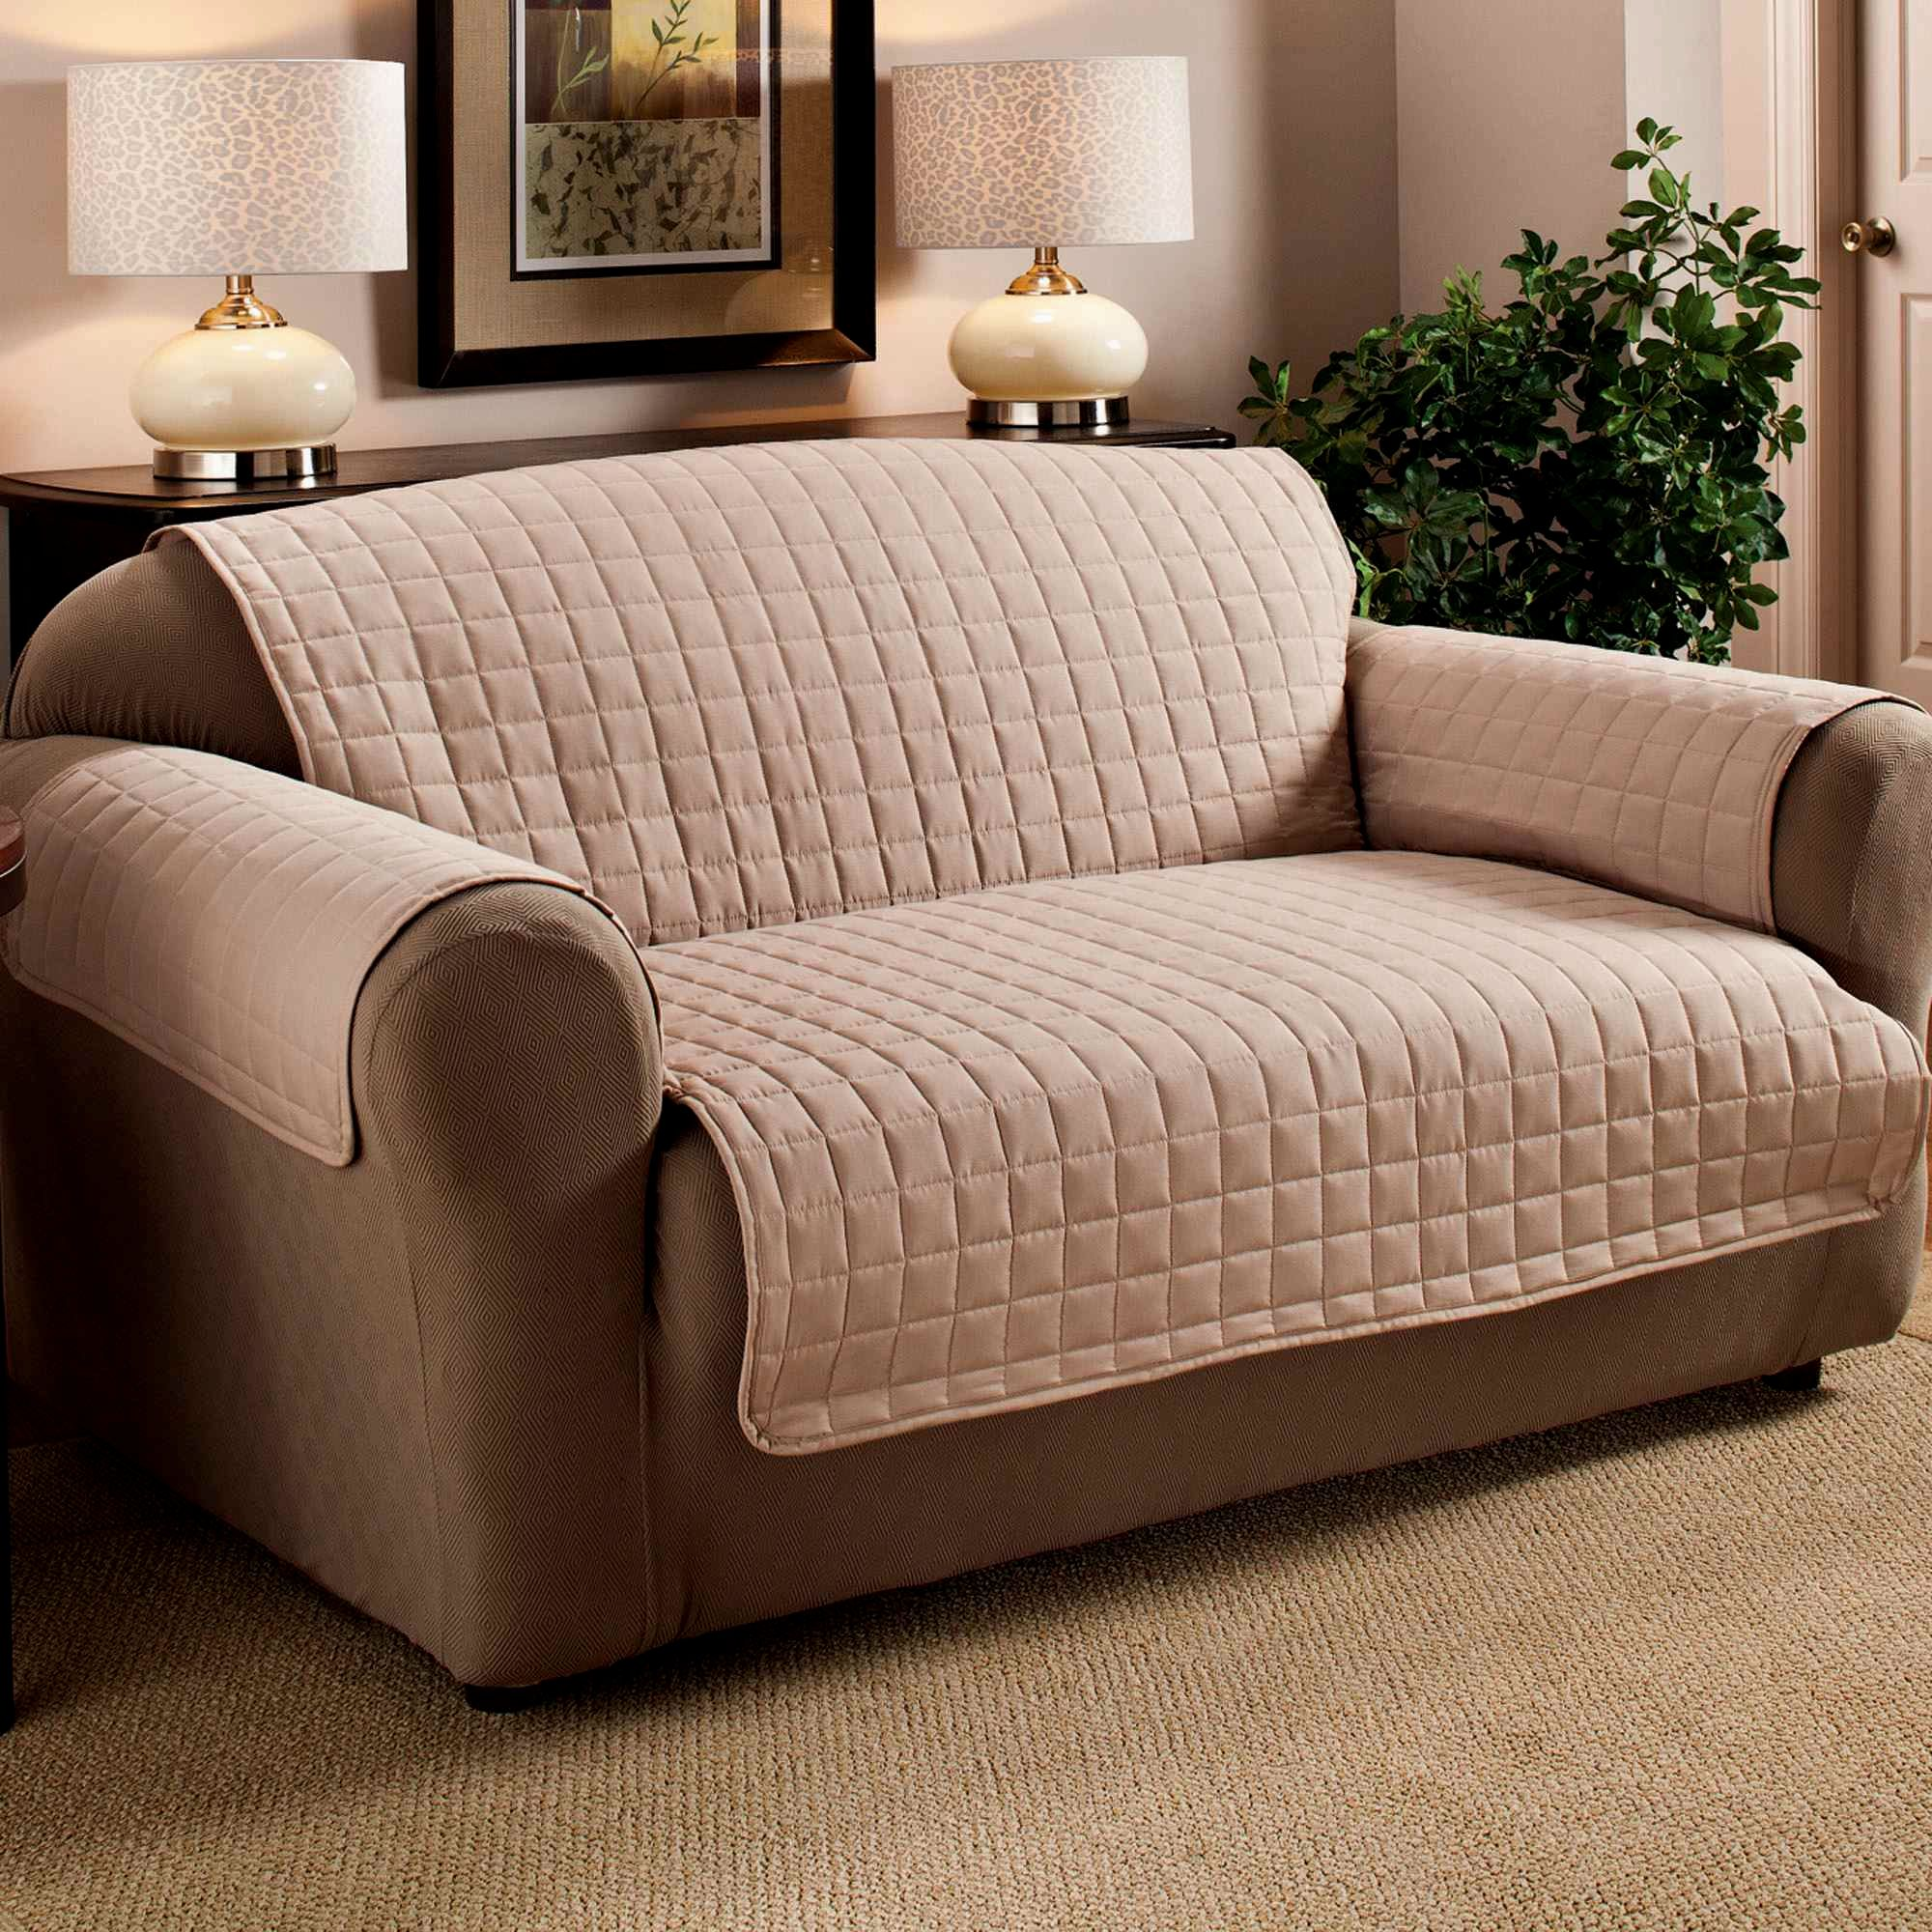 fresh camelback leather sofa image-Fresh Camelback Leather sofa Decoration